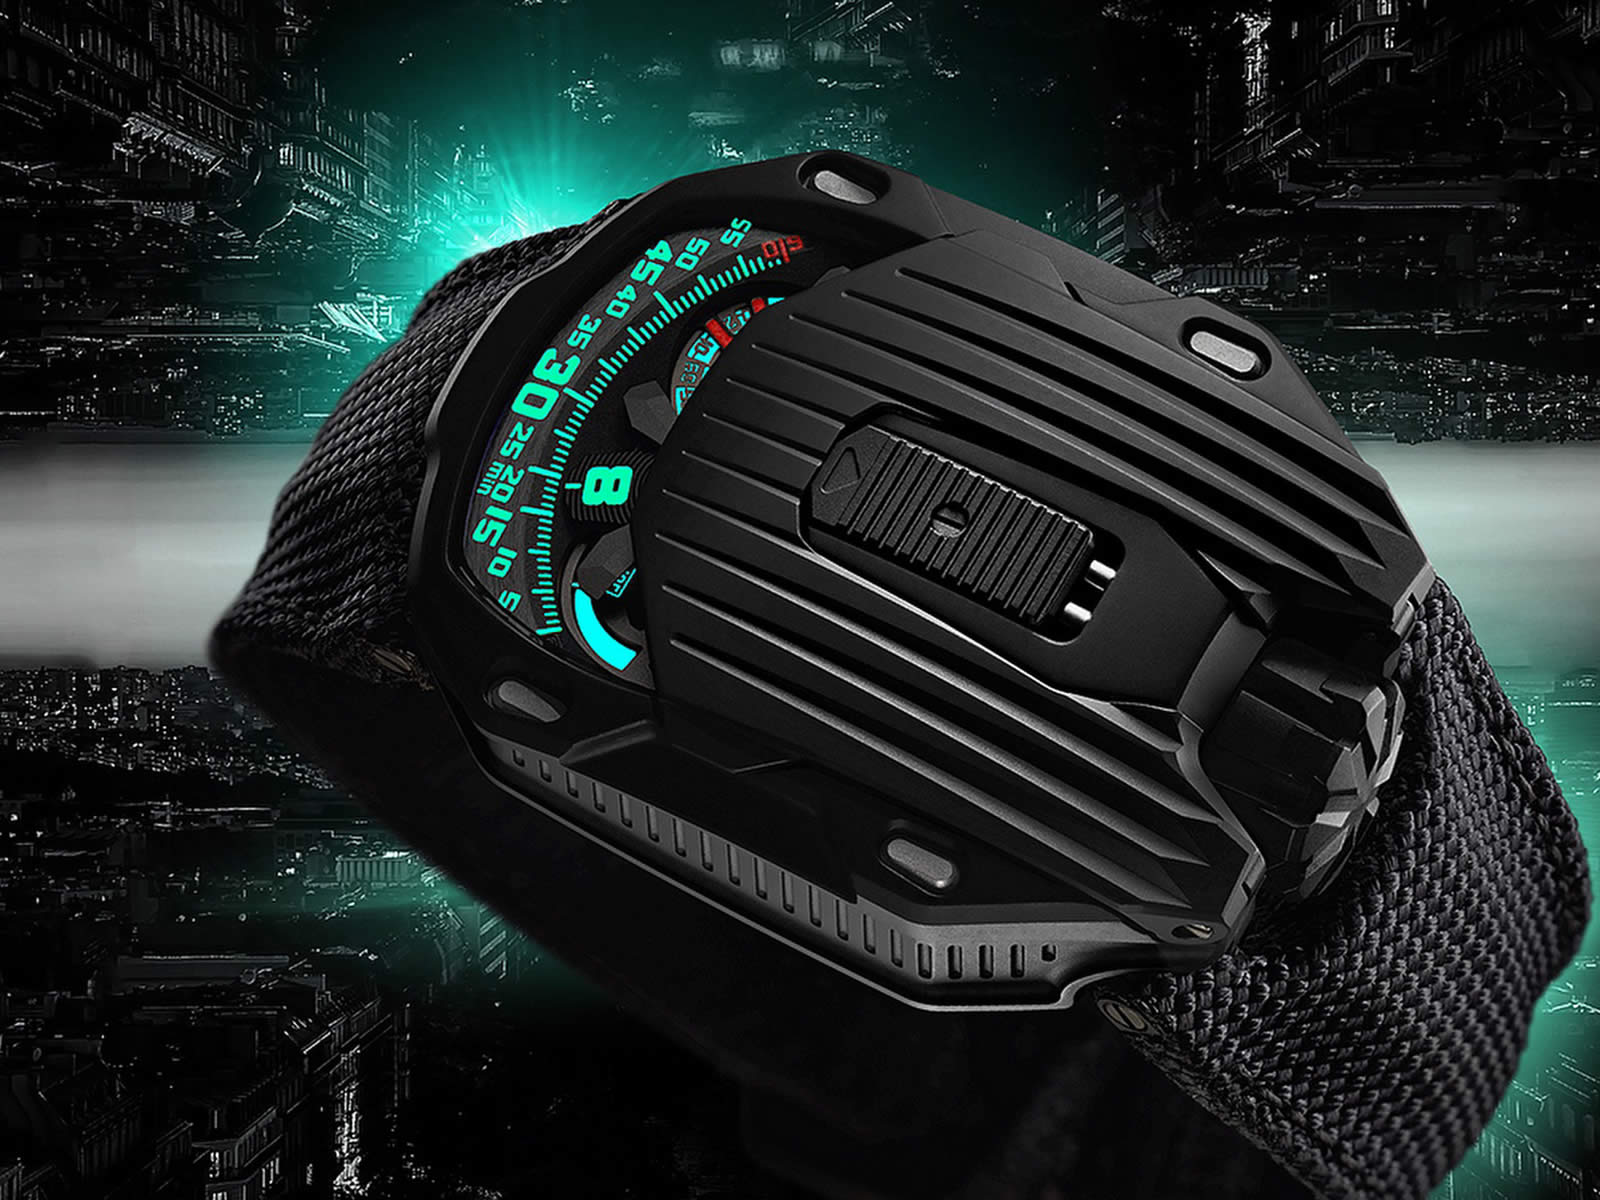 urwerk-ur-105-ct-kryptonite-3-.jpg